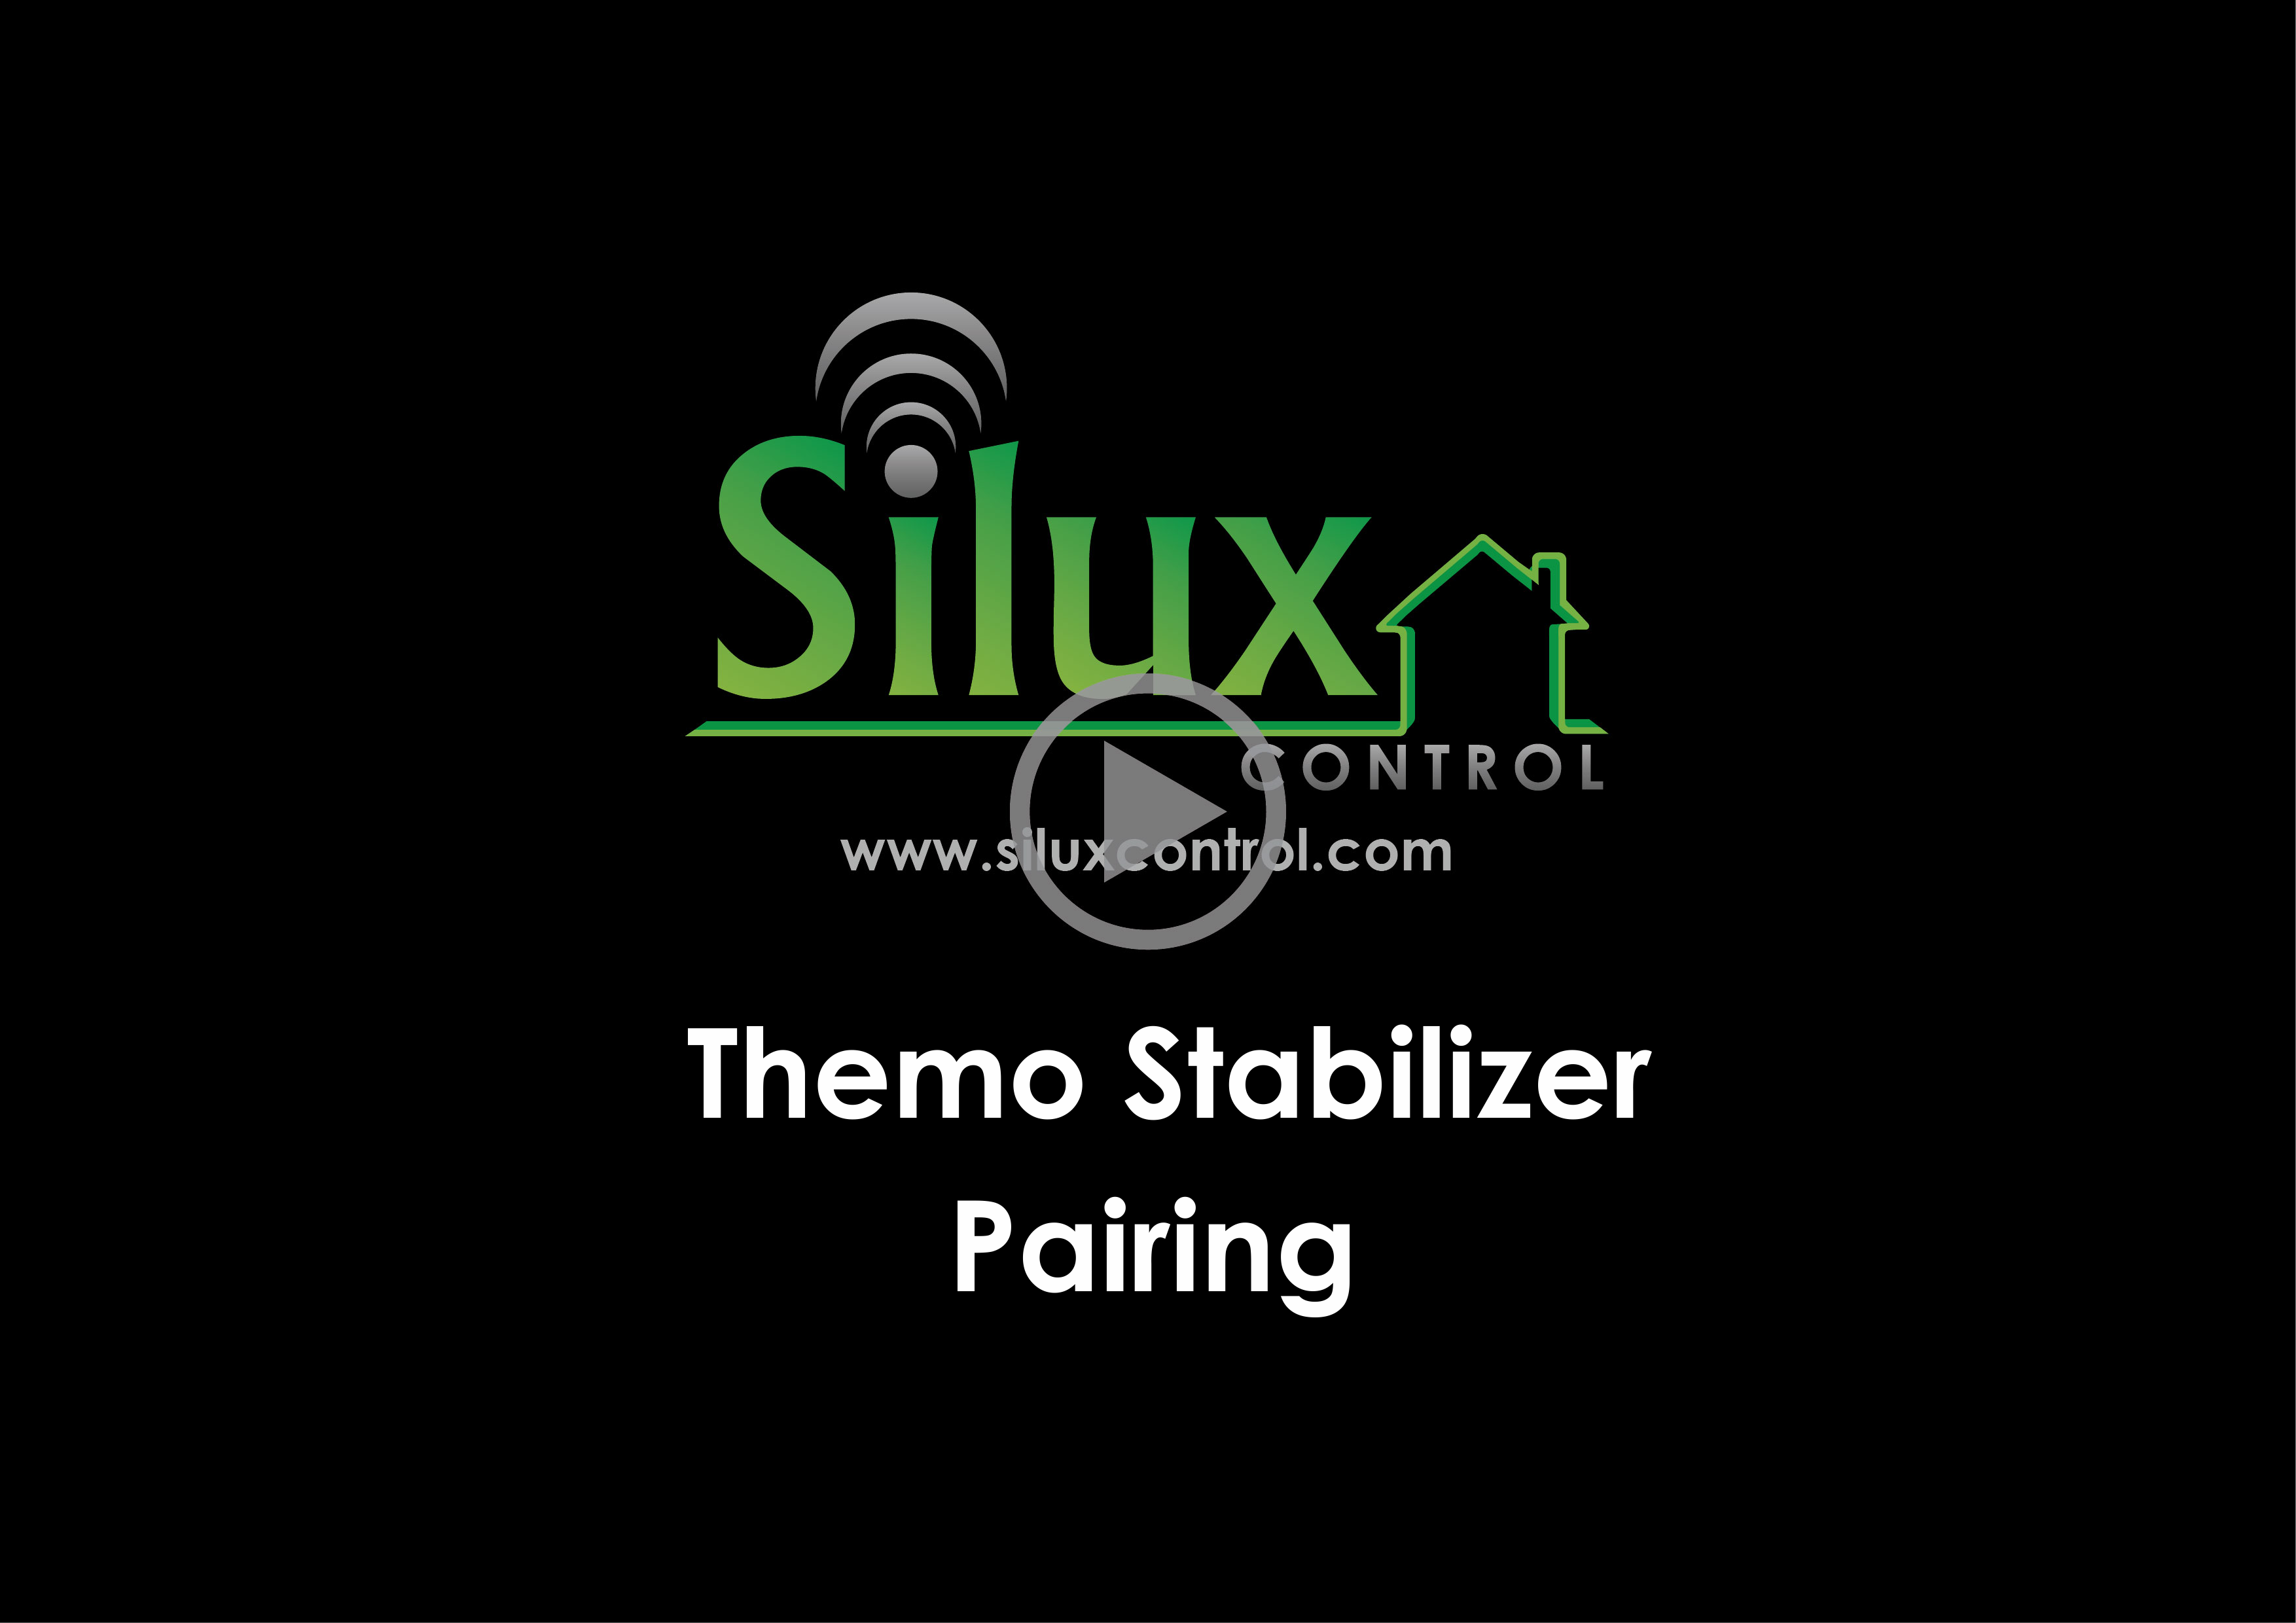 Silux control Thermo Stabilizer